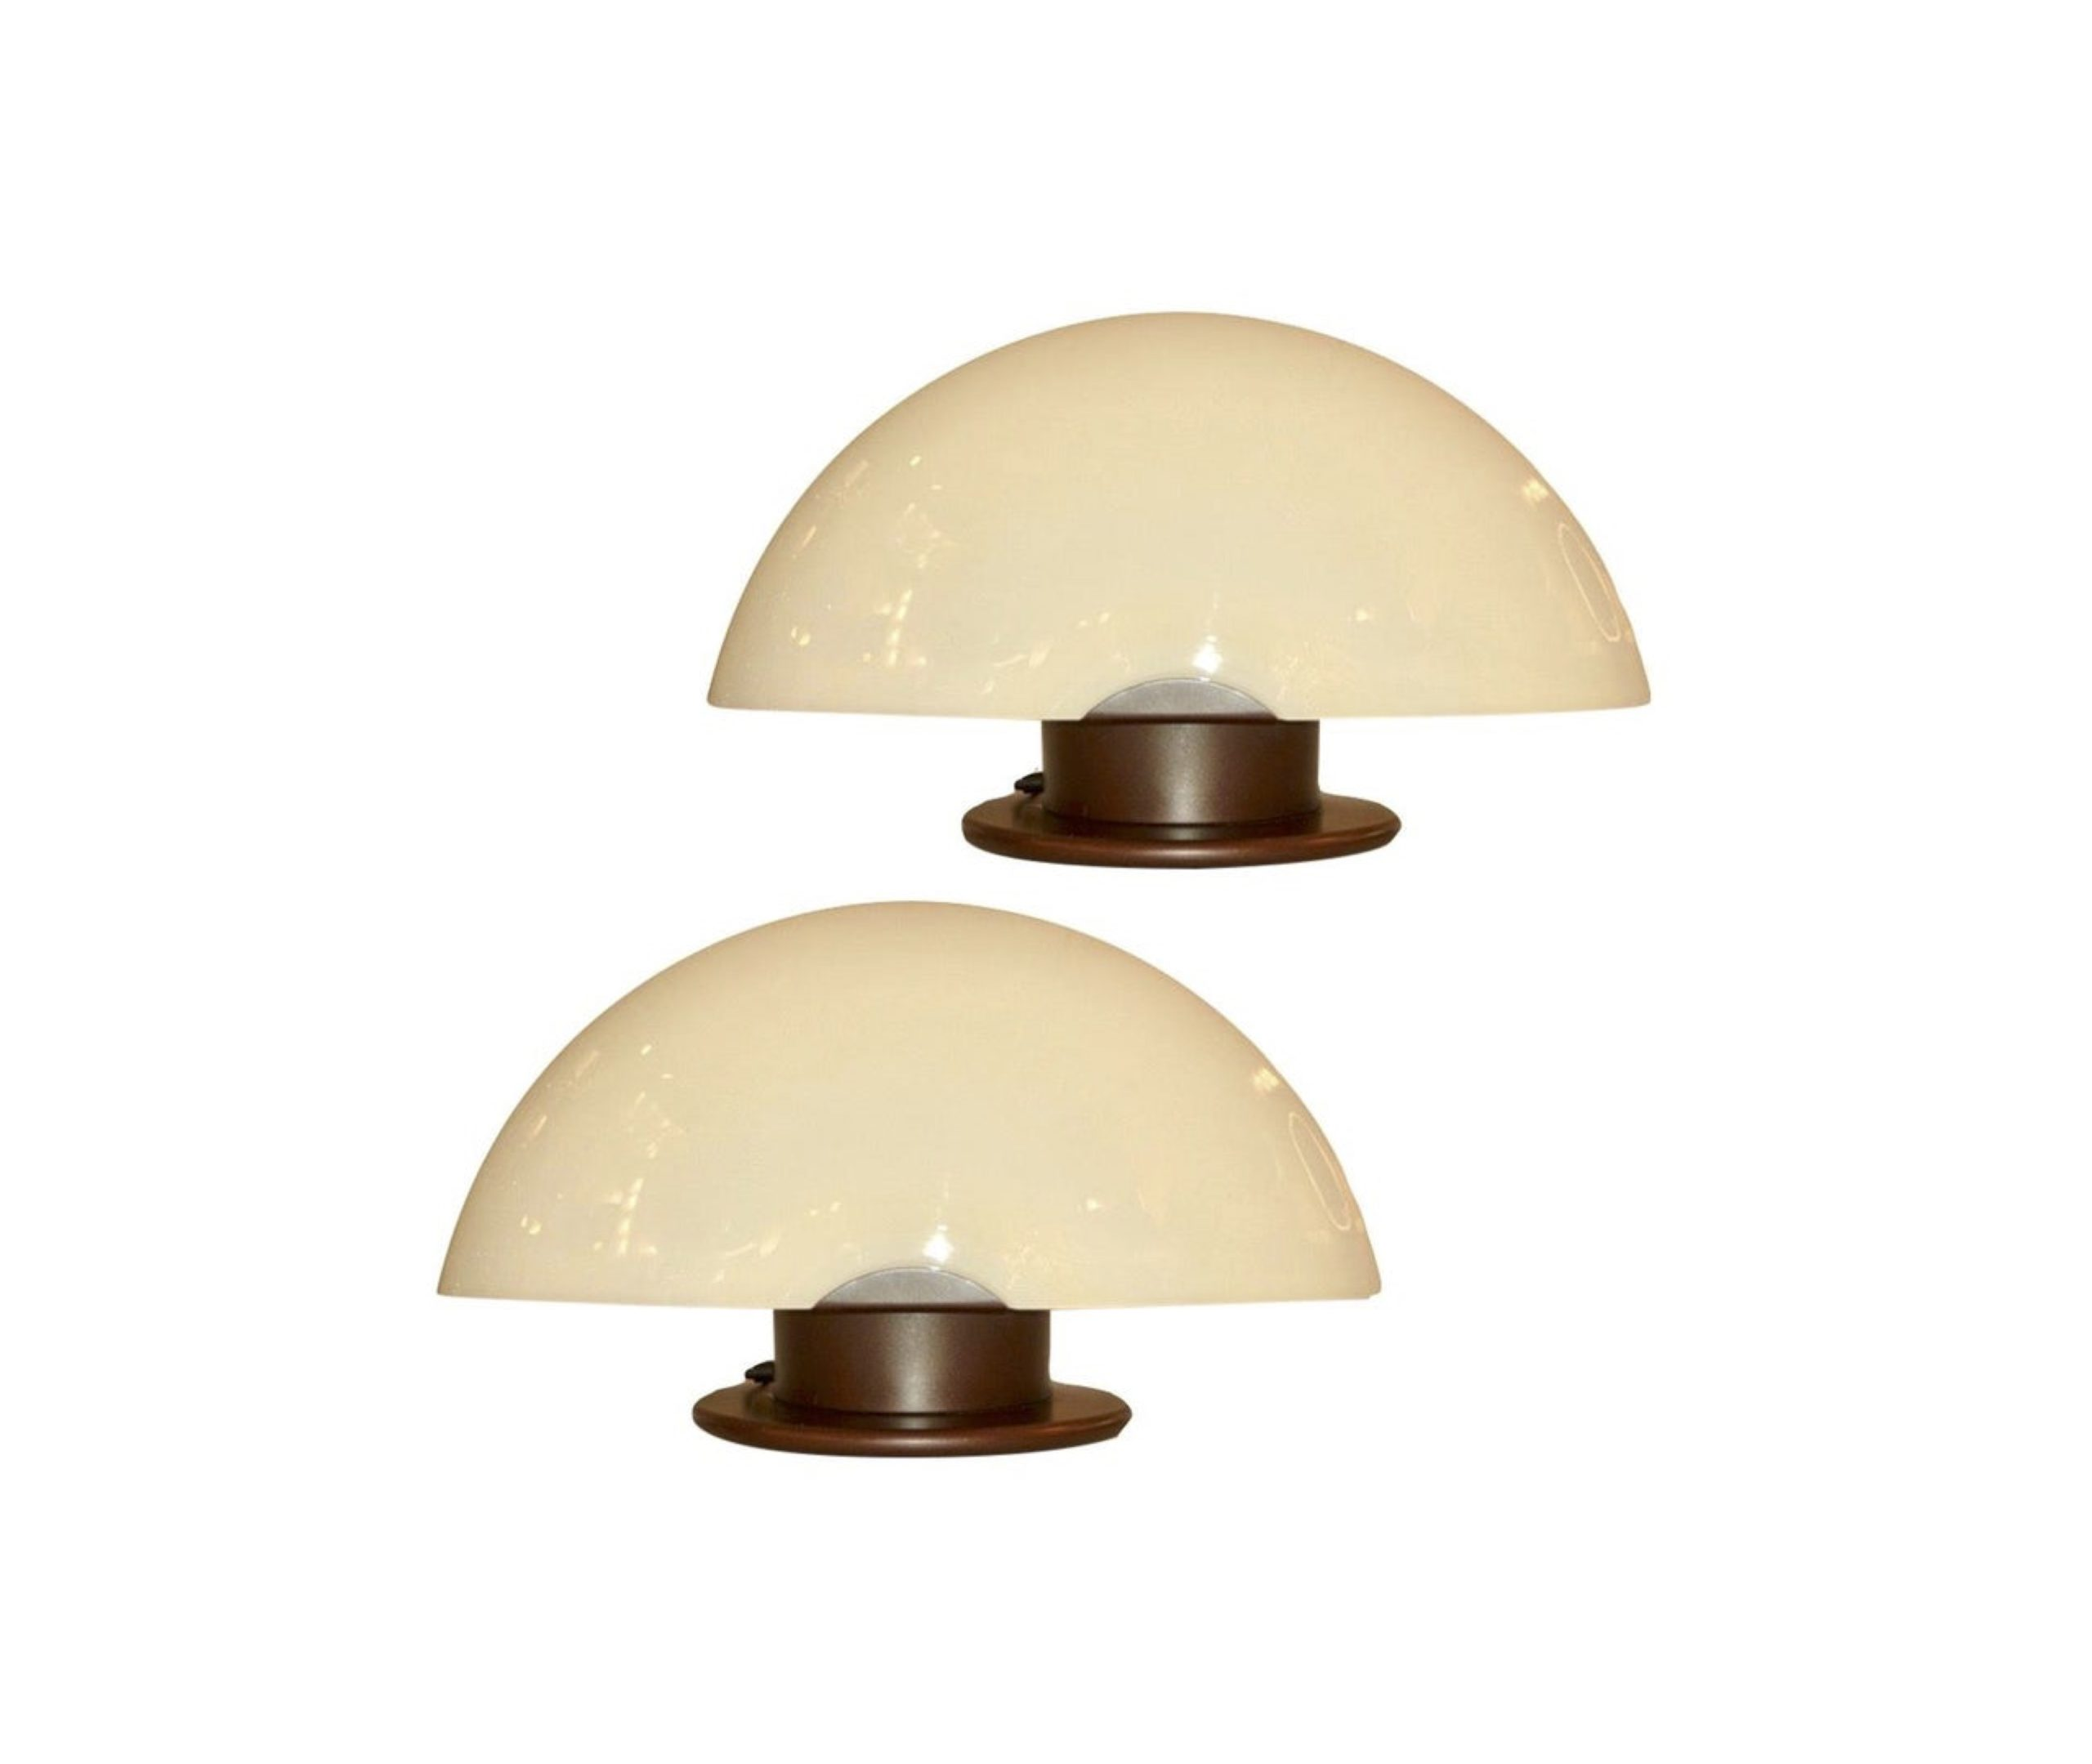 cosulich_interiors_and_antiques_products_new_york_design_1970s_mazzega_italian_space_age_pair_ivory_murano_glass_copper_laquer_lamps-scaled-1